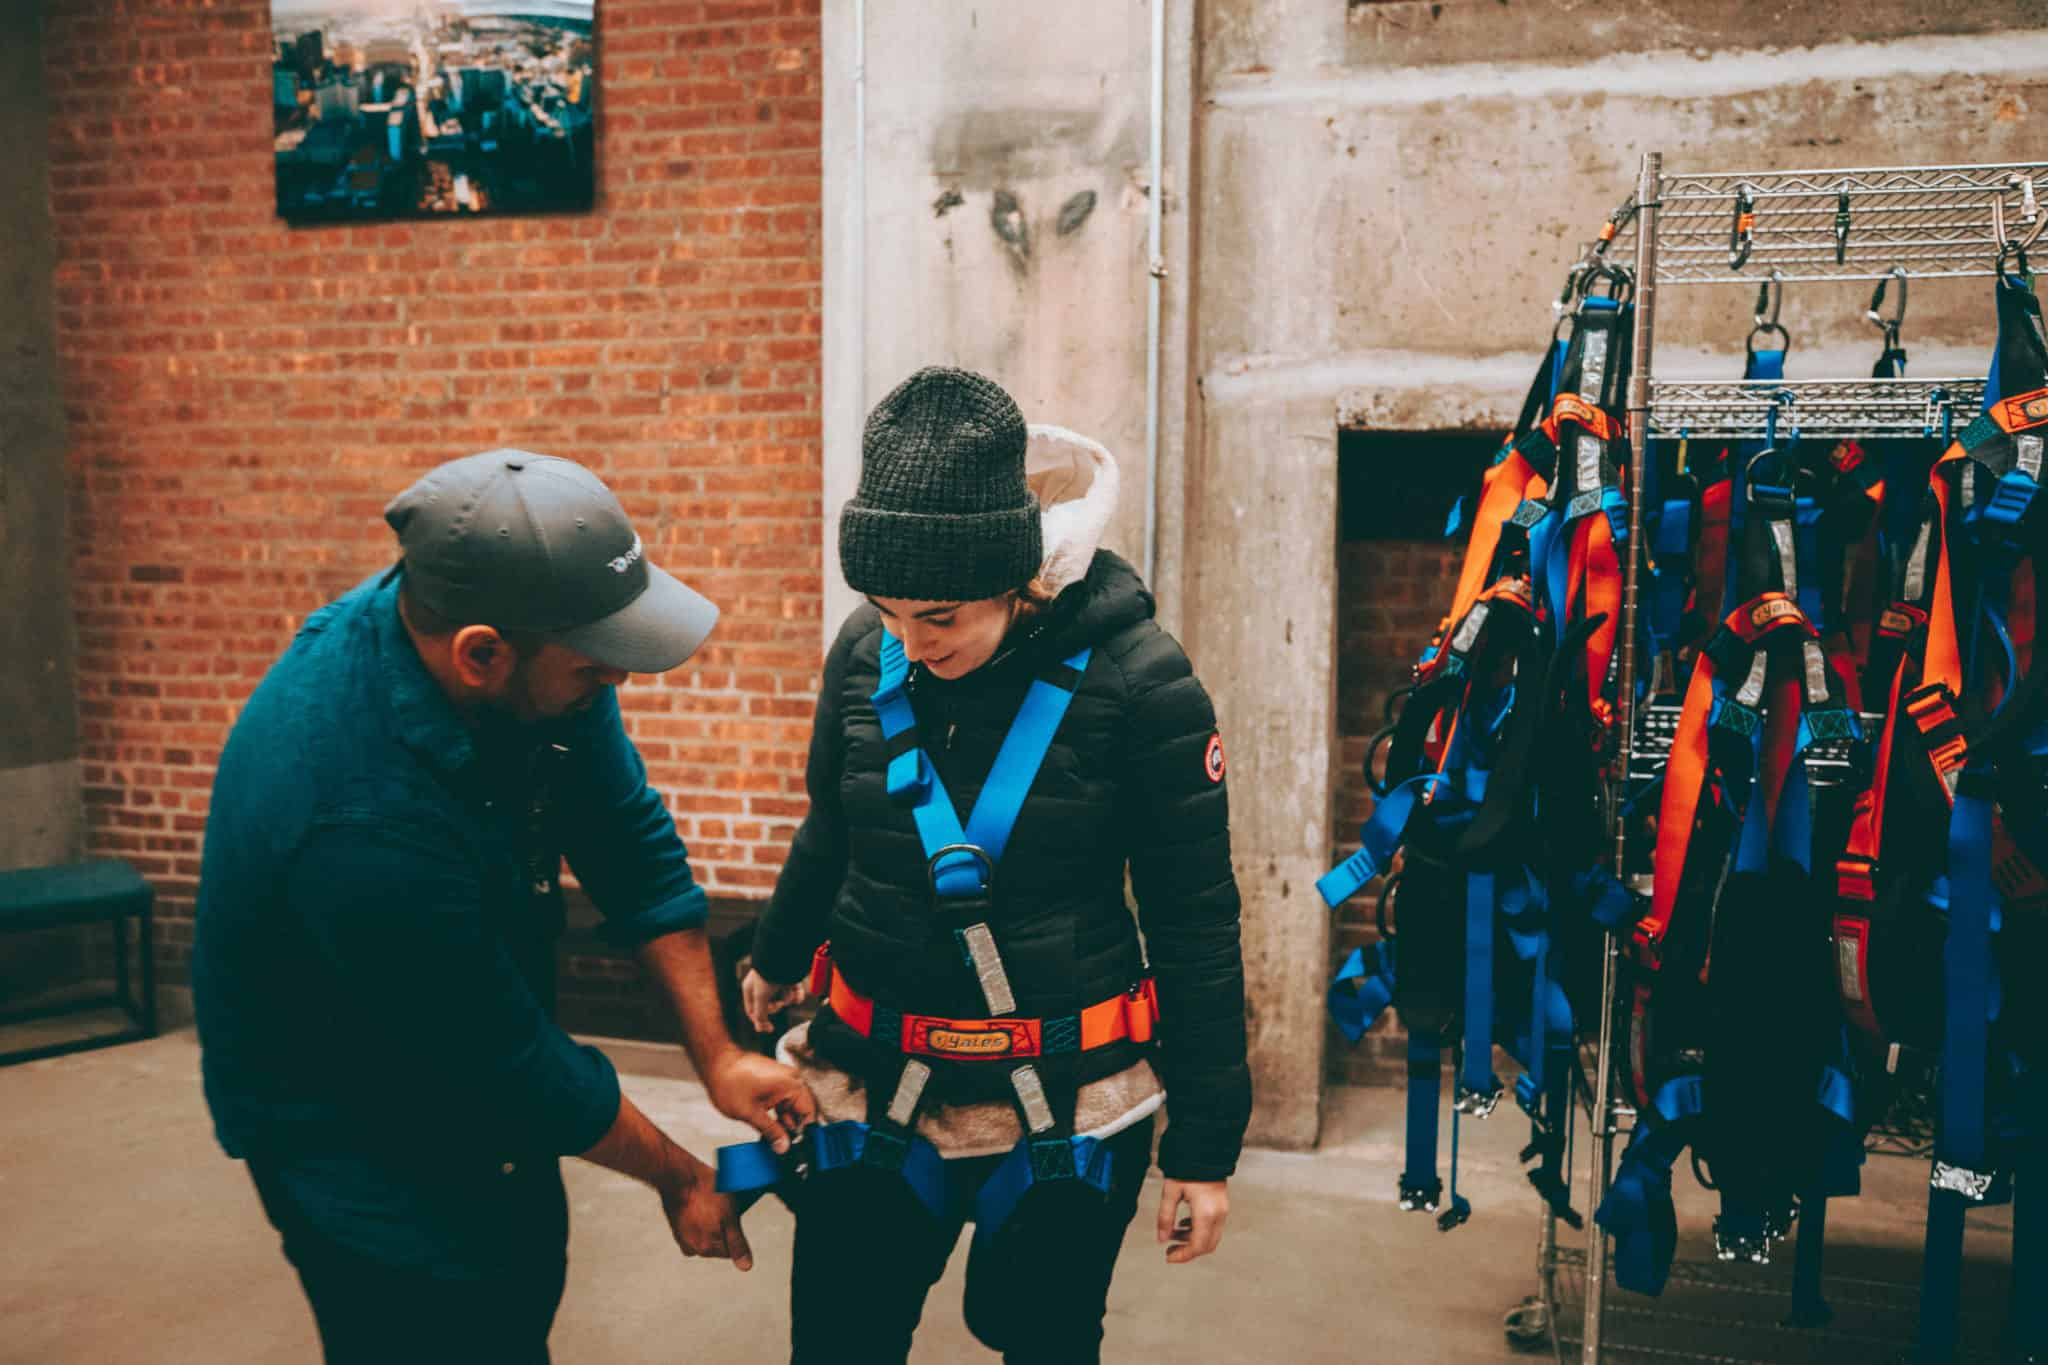 Helicopter Safety Gear Prep